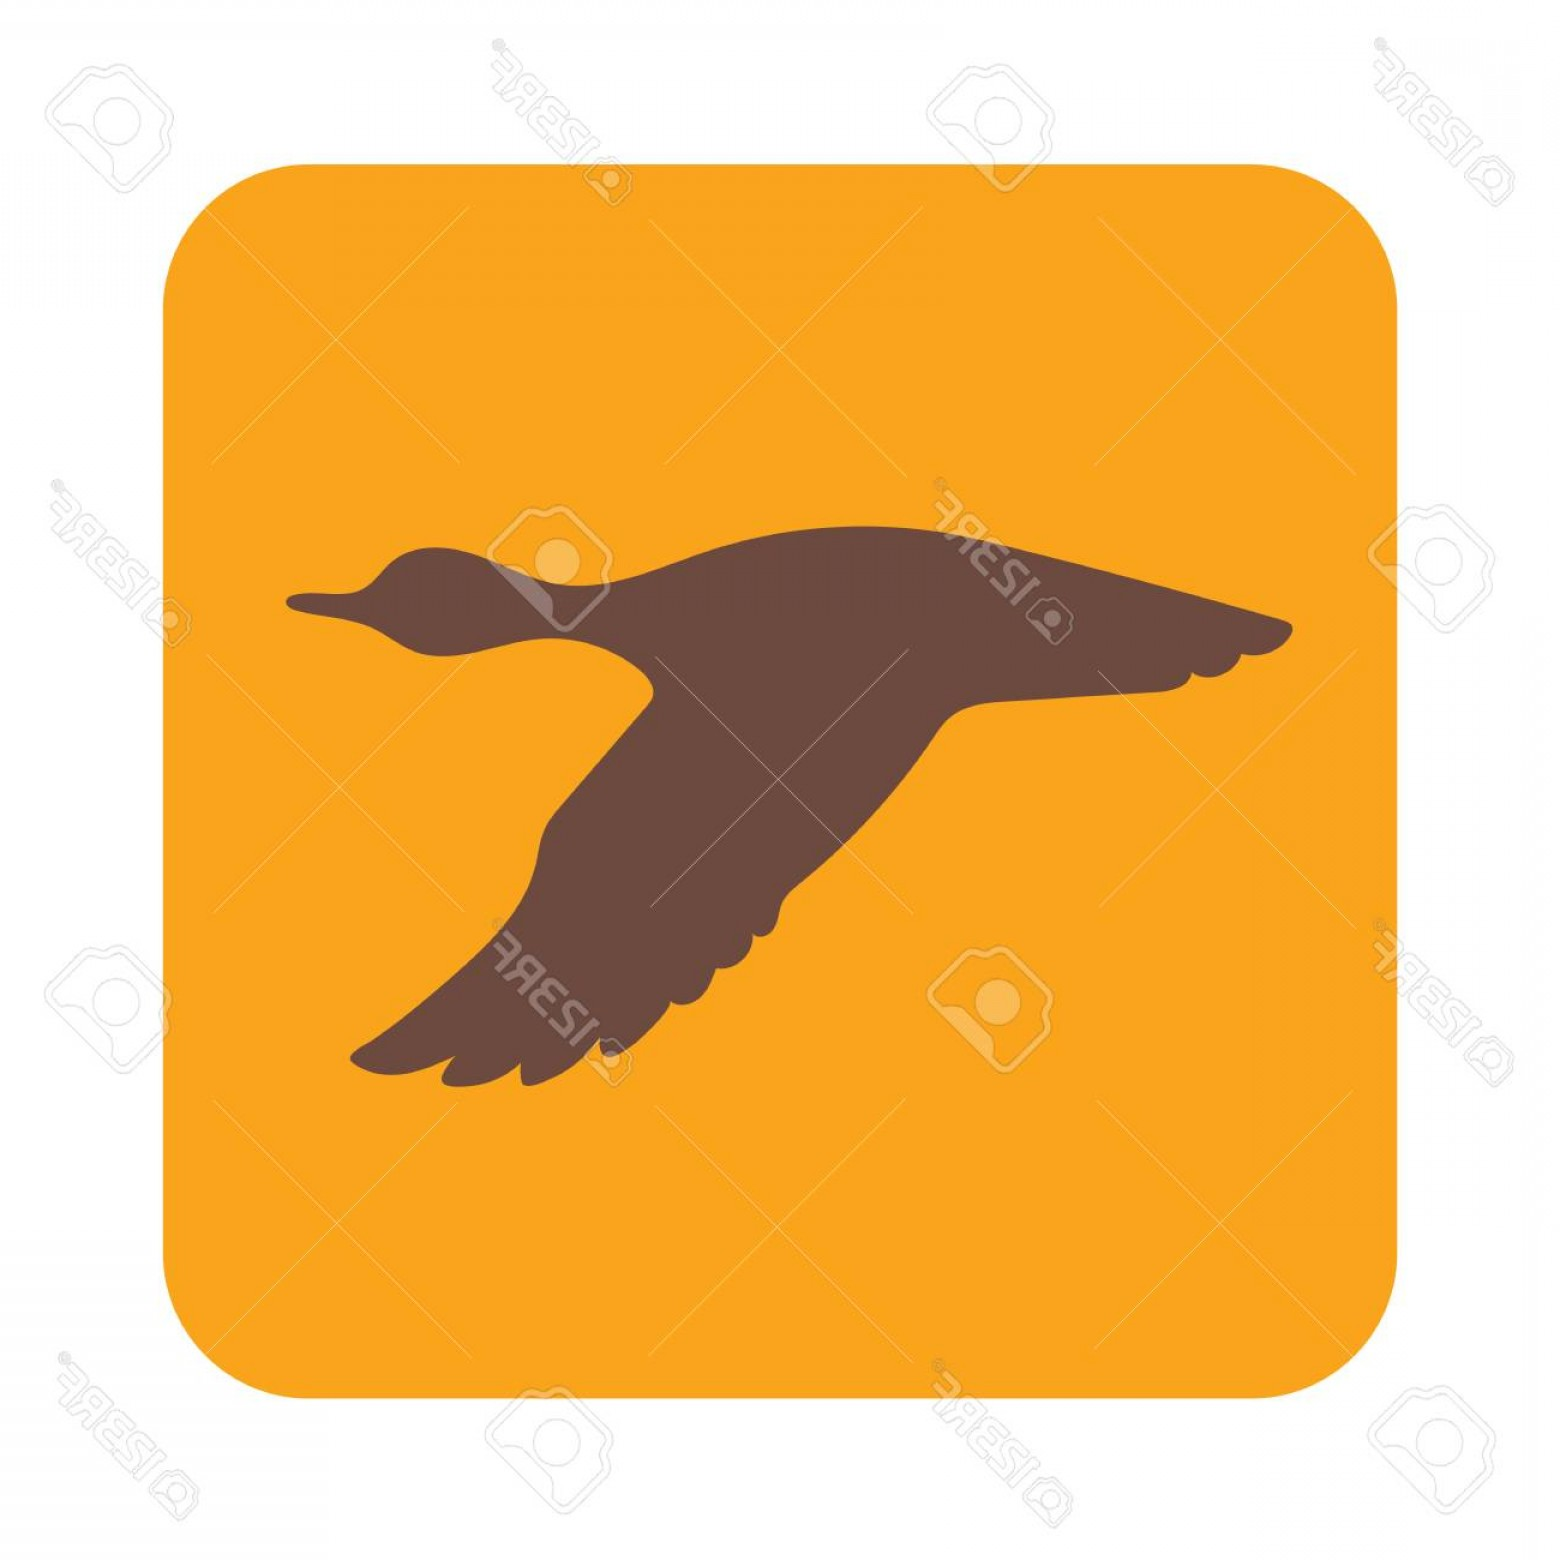 Flying Duck Outline Vector: Photostock Vector Vector Silhouette Flying Duck Vector Illustration